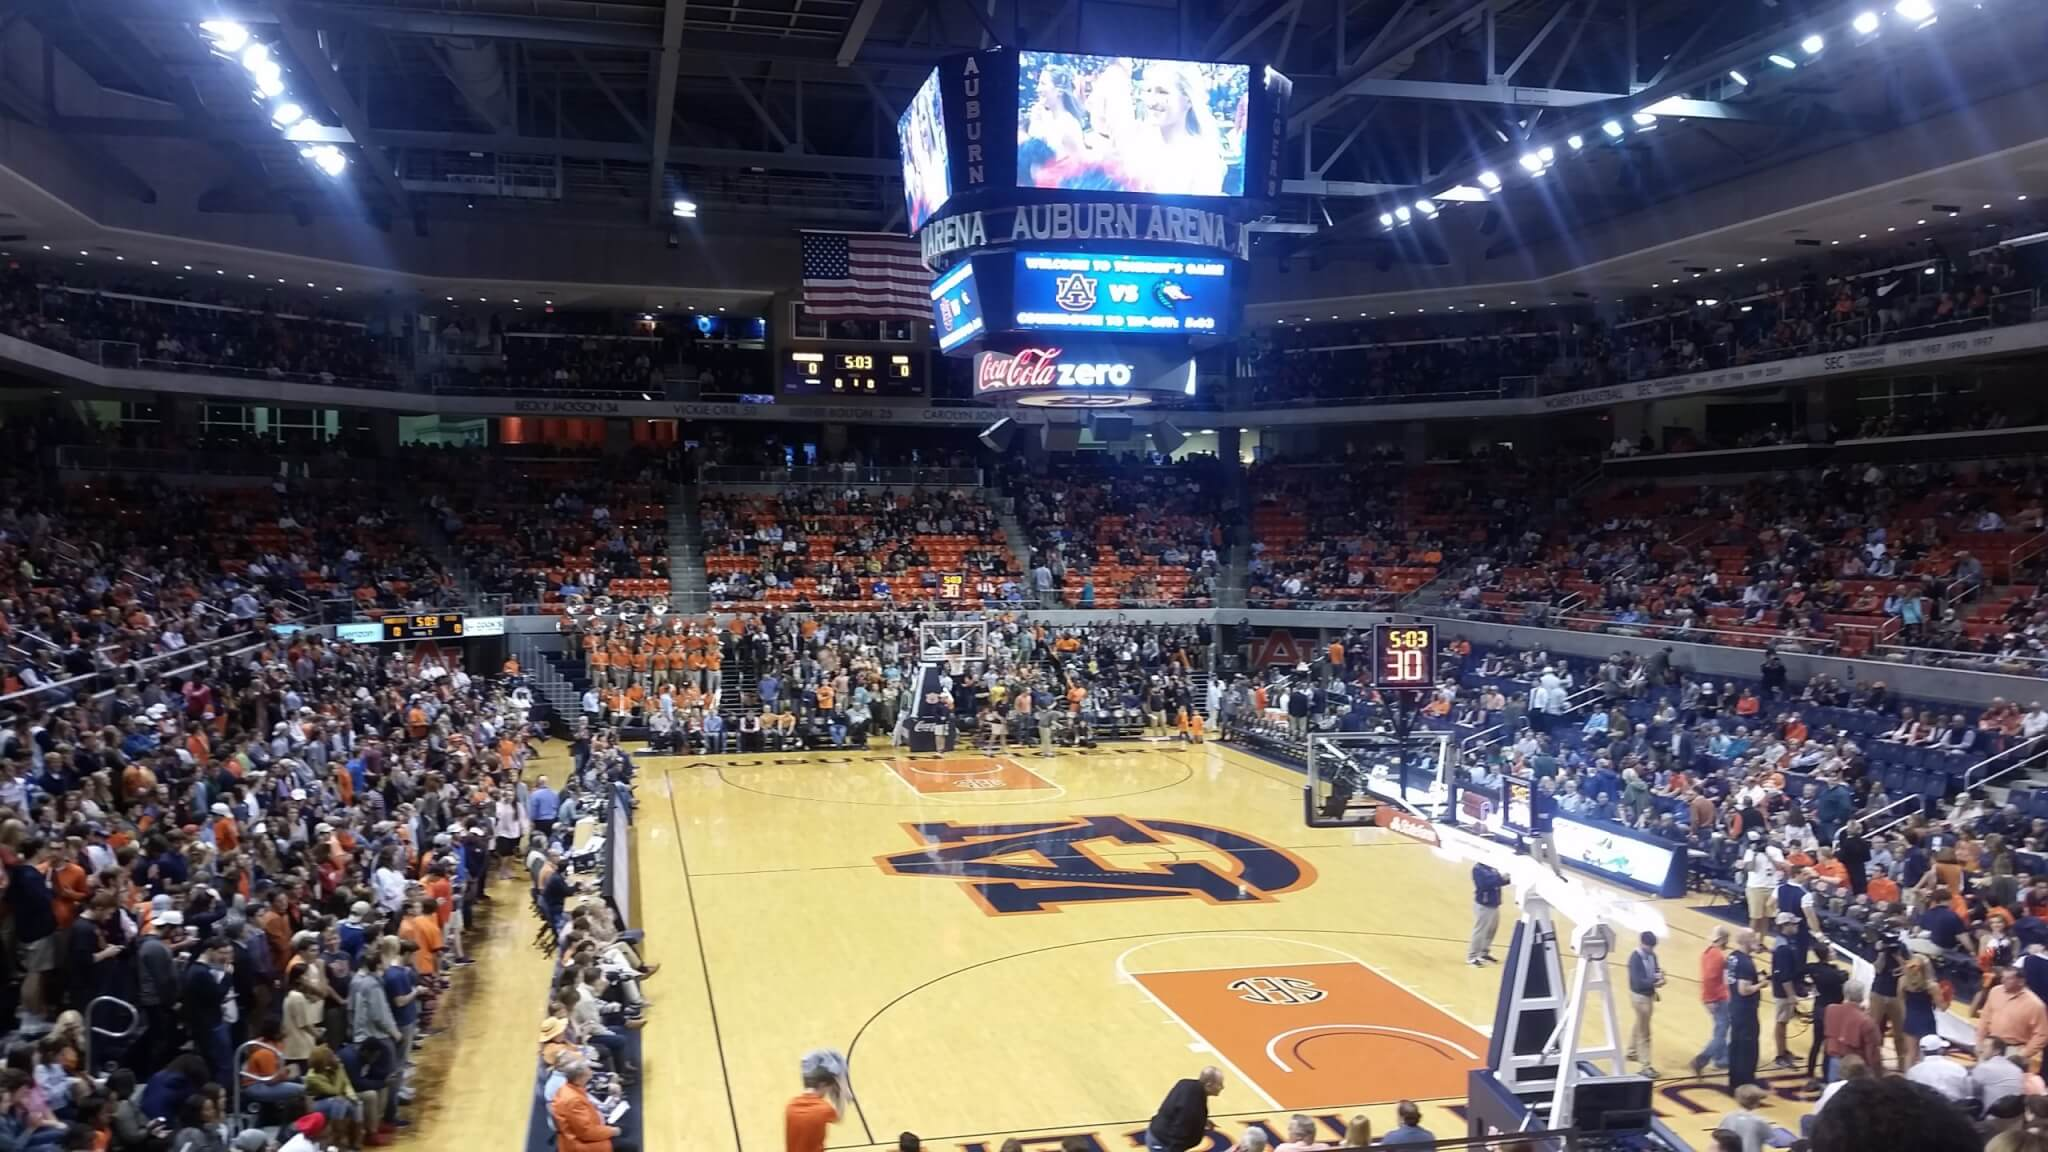 Unbeaten Auburn Laying 8 To Nc State In First Real Test Of